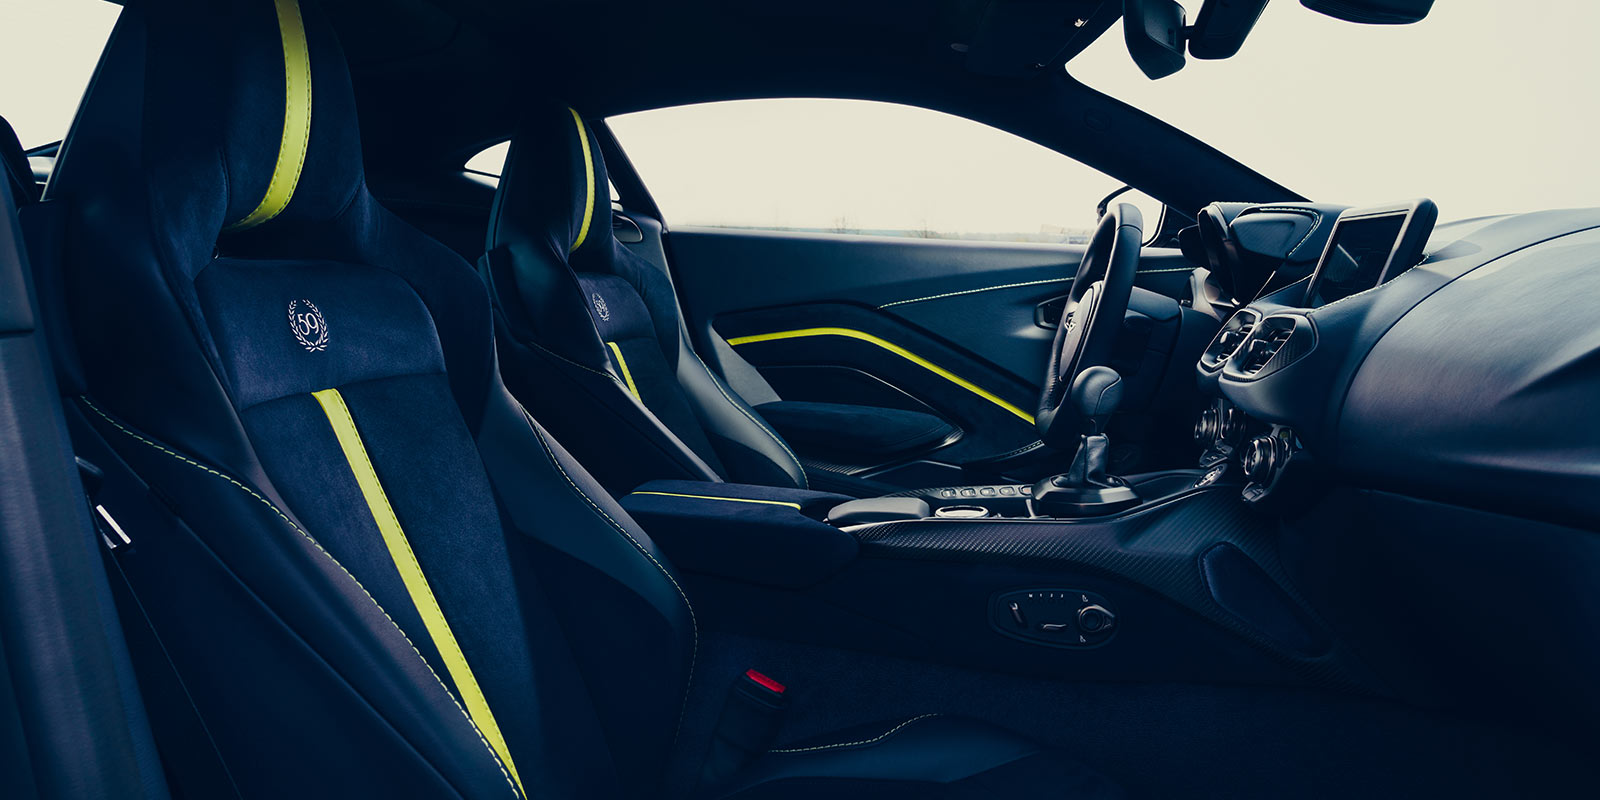 Aston Martin Vantage AMR - Limited Edition - Pure, Engaging Performance image 4